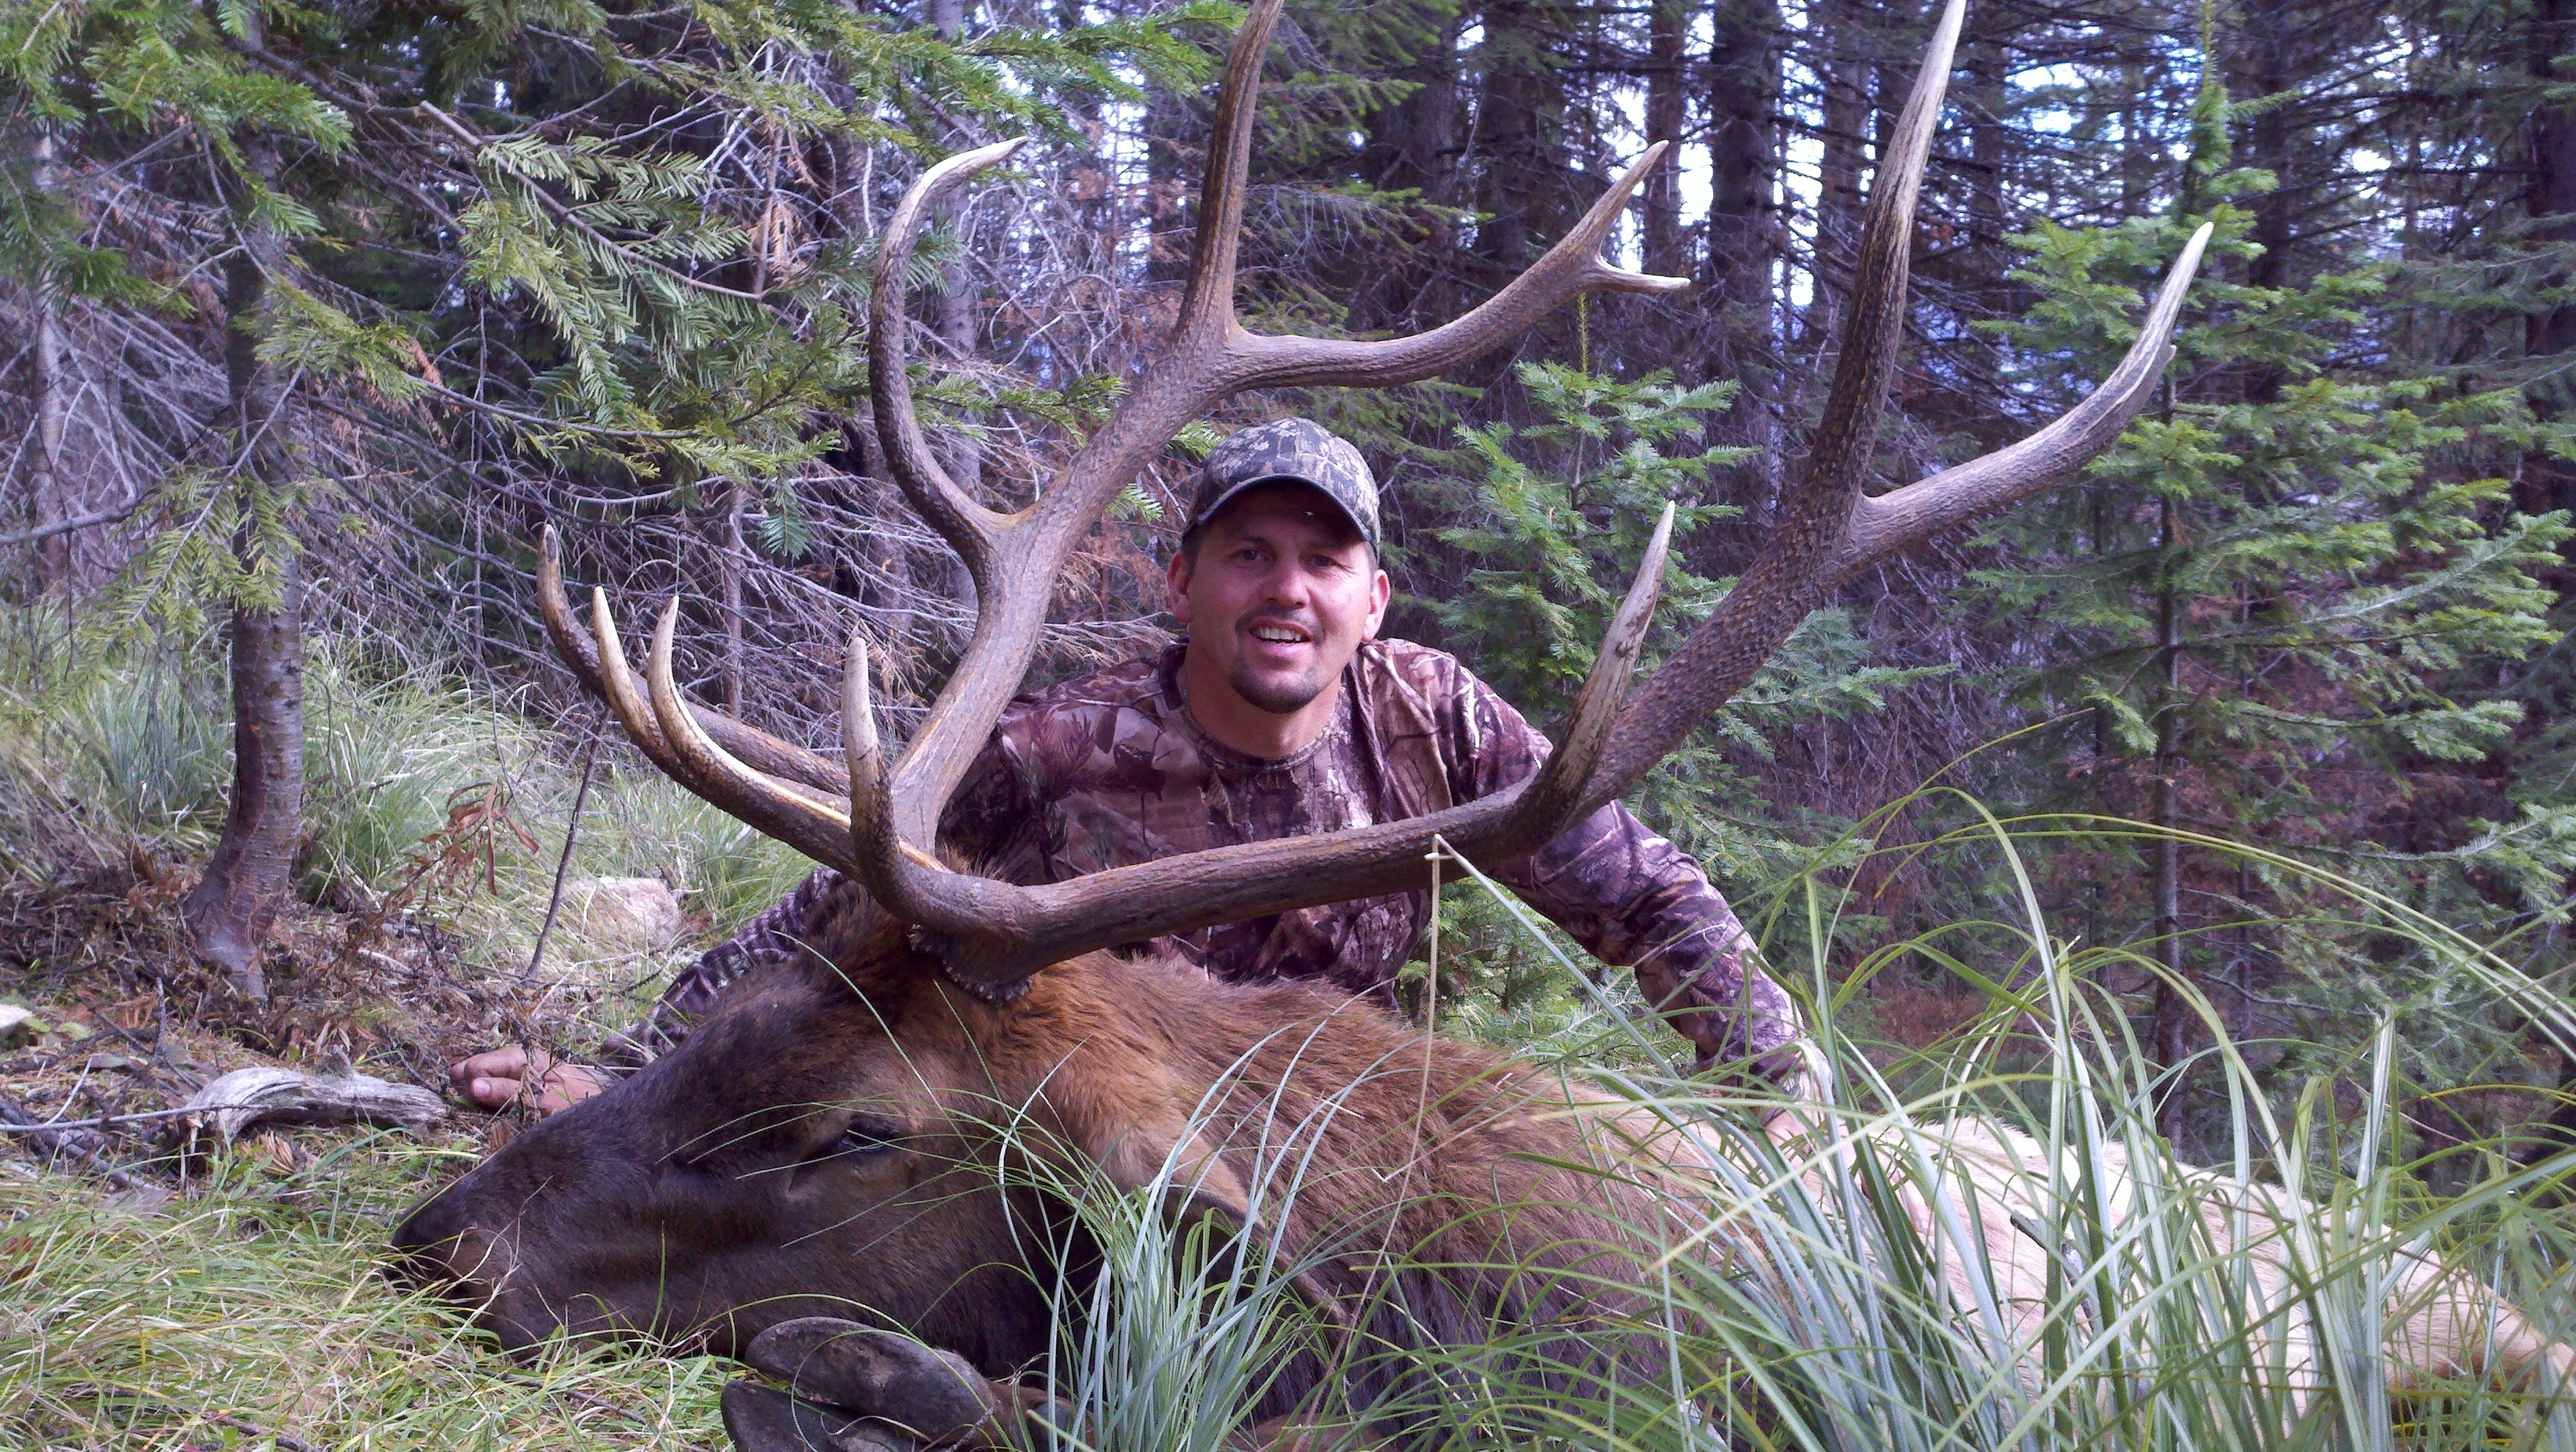 Don Corrigan's 2010 elk